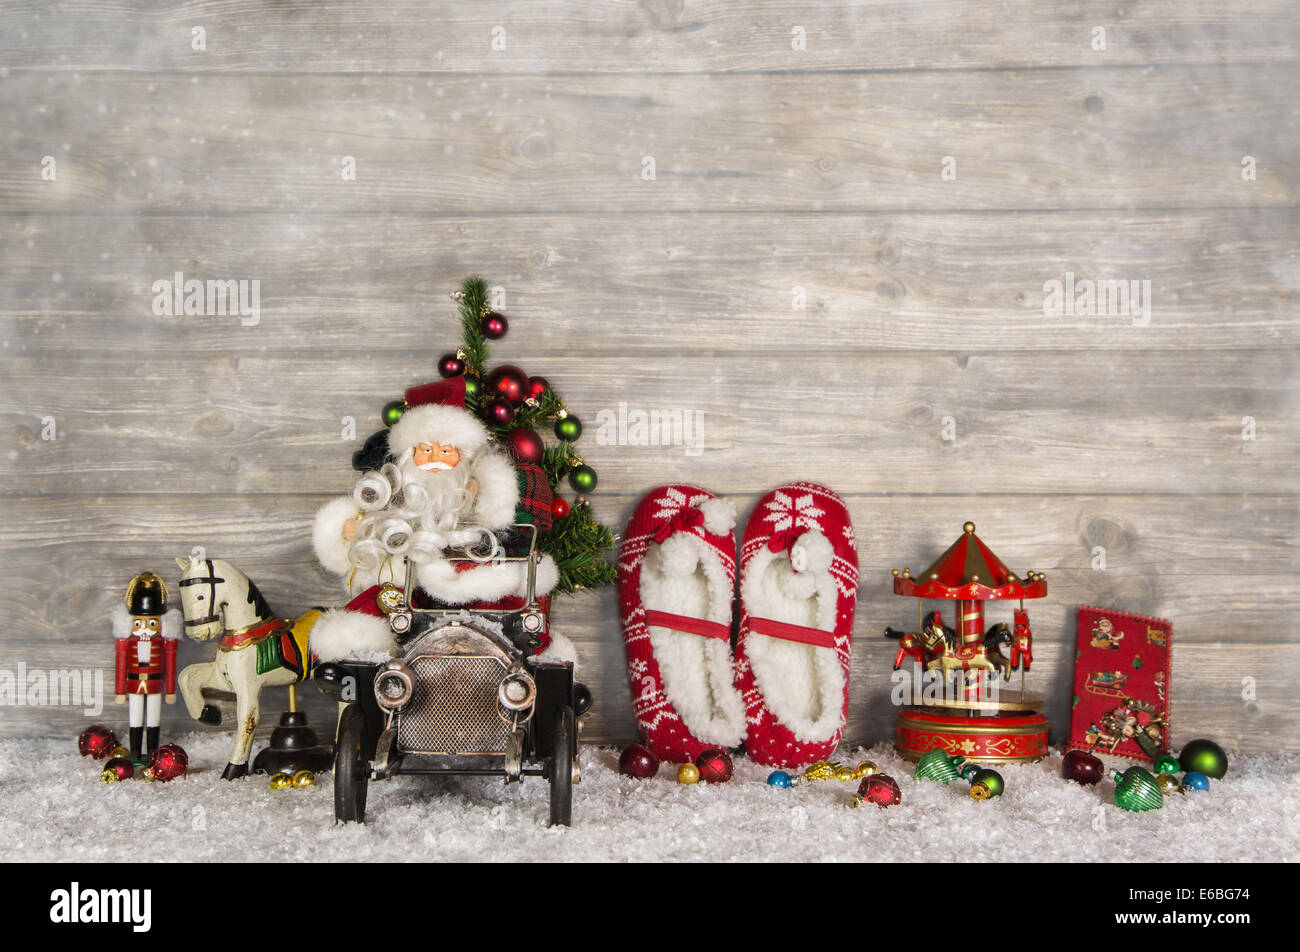 Wooden Witty Vintage Christmas Background With Santa And Old Toys For Children In Country Style